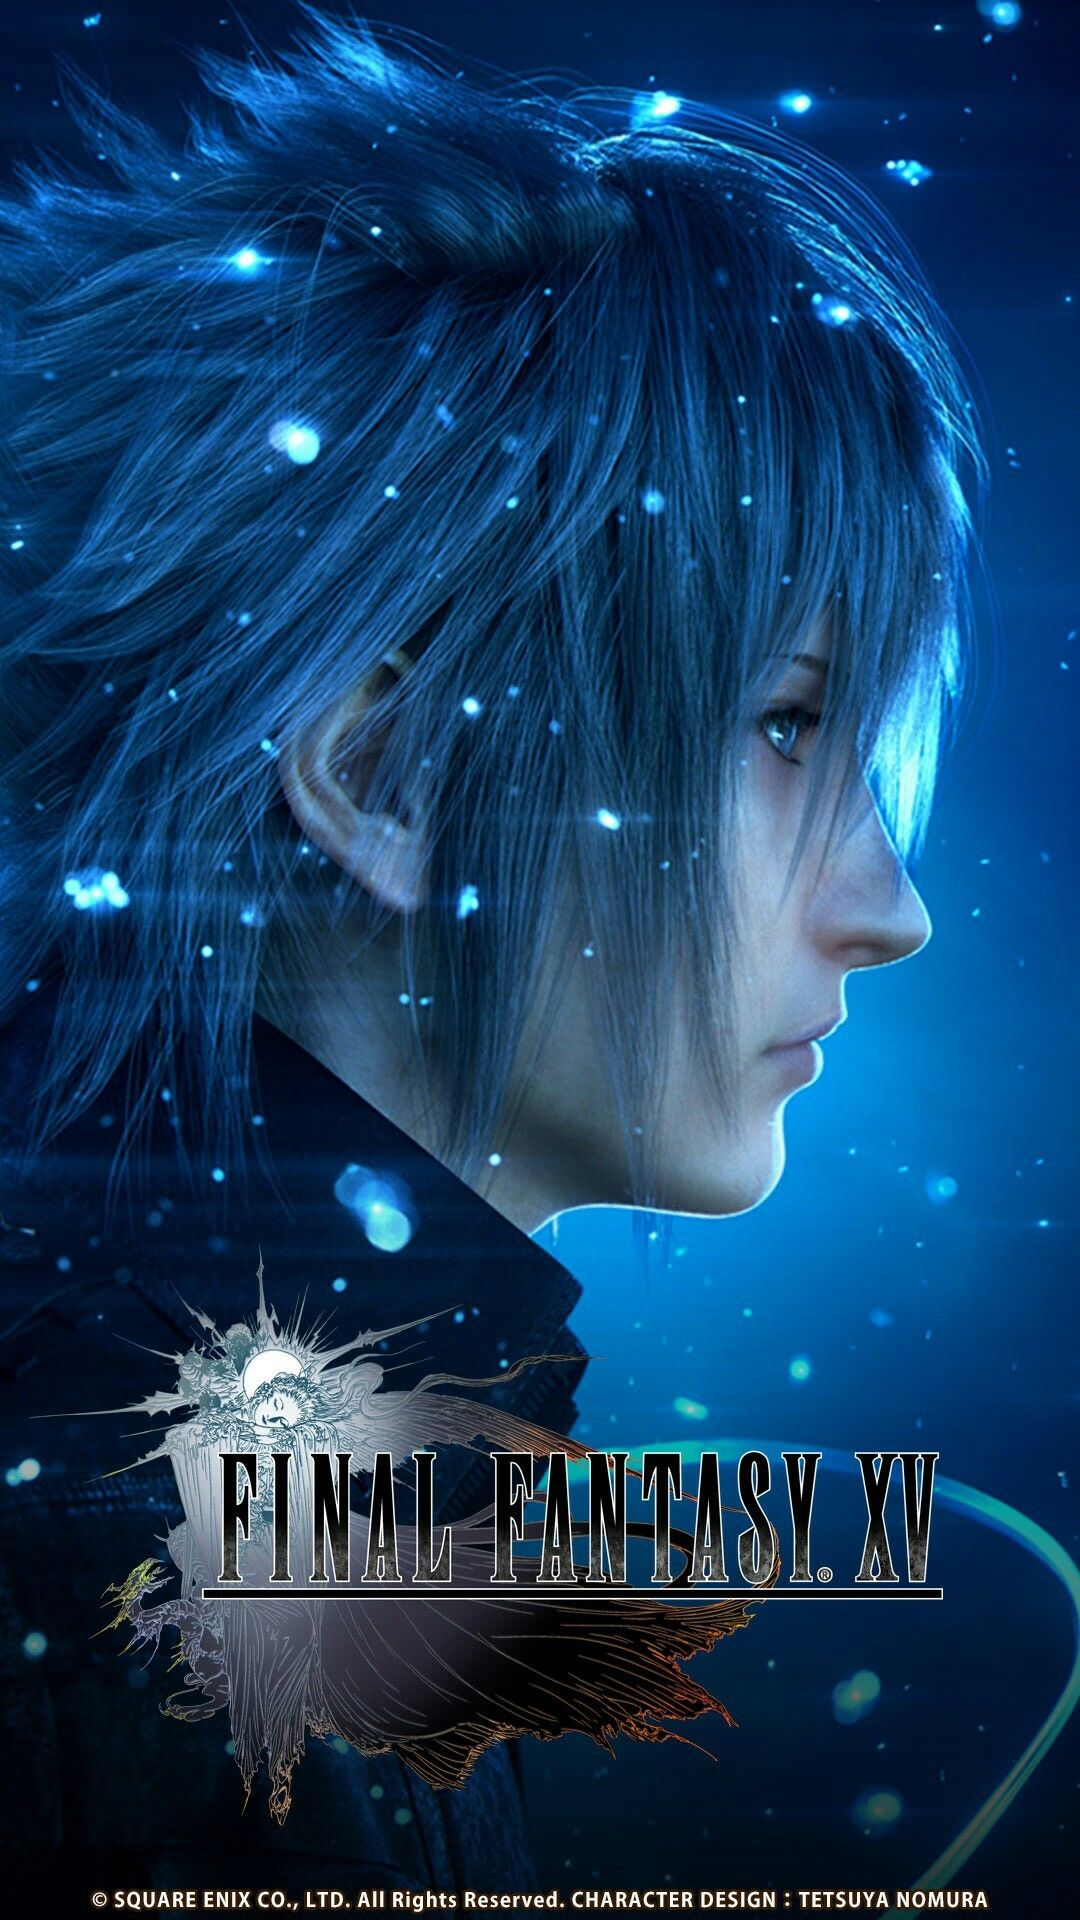 Final Fantasy 15 Noctis Wallpapers For Android On Wallpaper 1080p Hd Final Fantasy Wallpaper Hd Final Fantasy Xv Wallpapers Noctis Final Fantasy